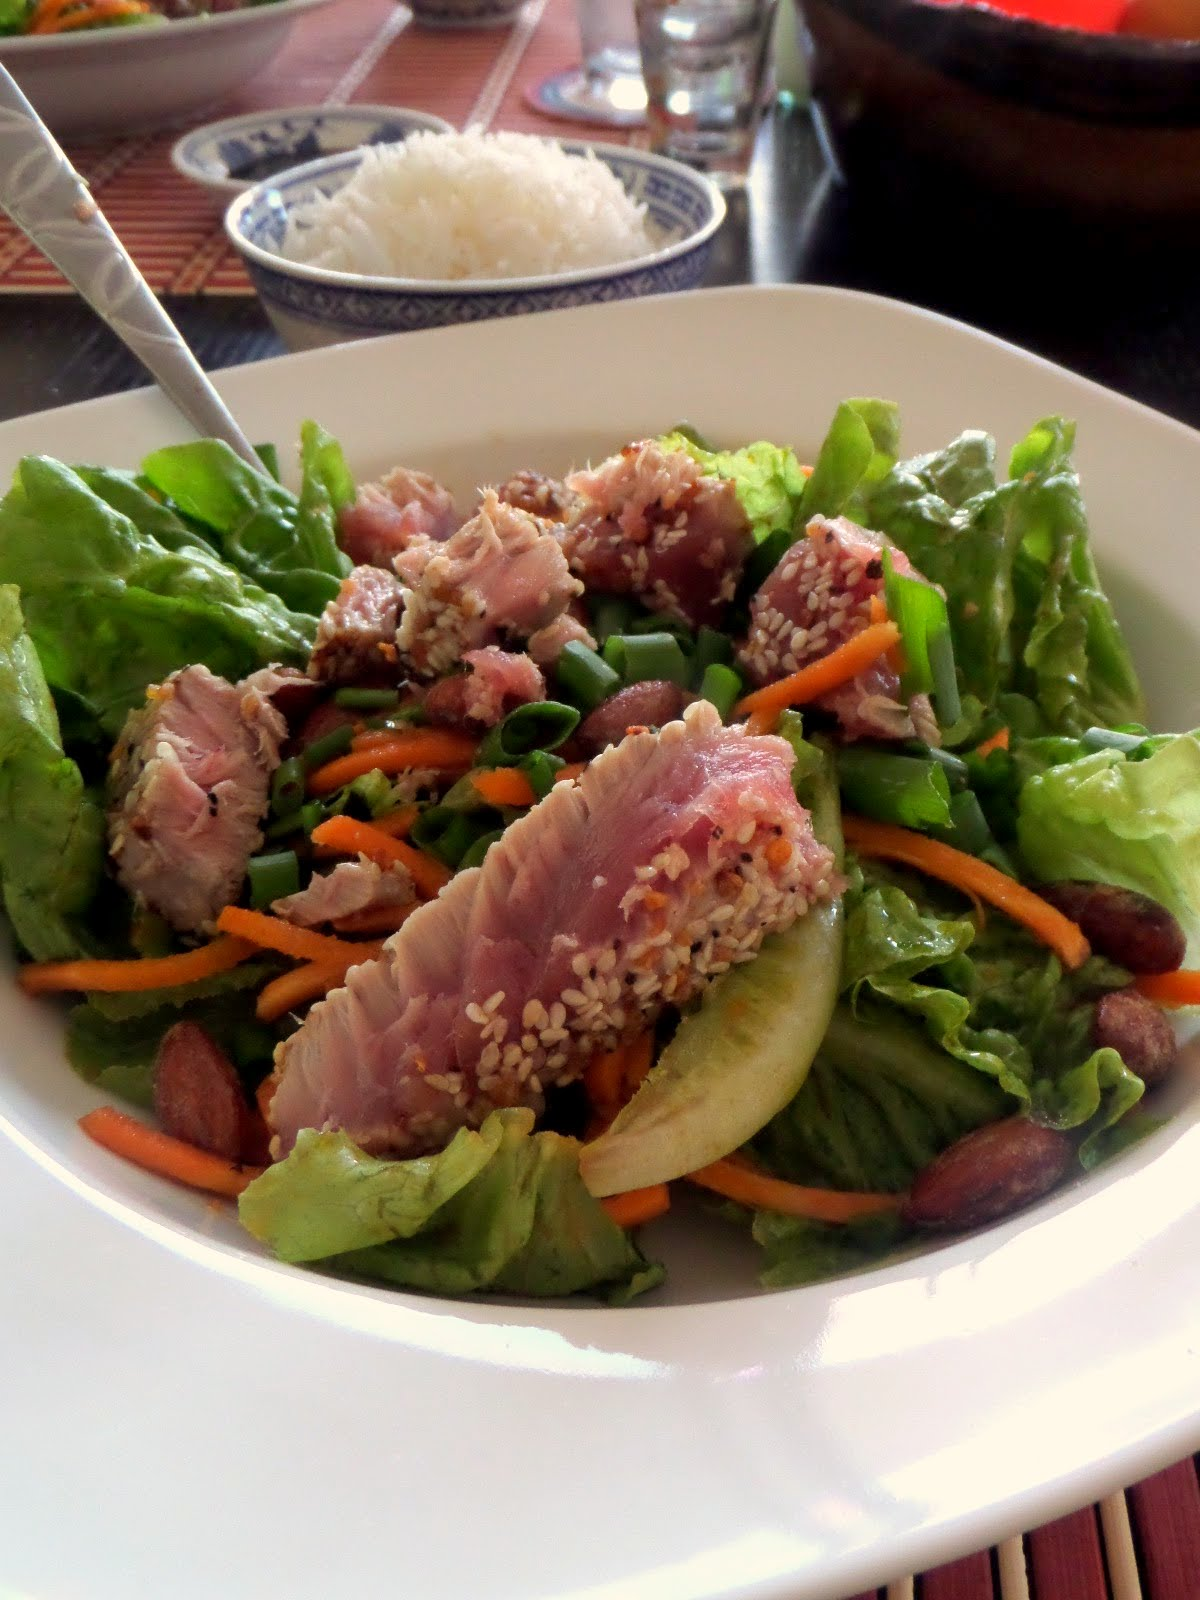 Seared Ahi Salad: Strips of seared tuna steak atop a green salad ...